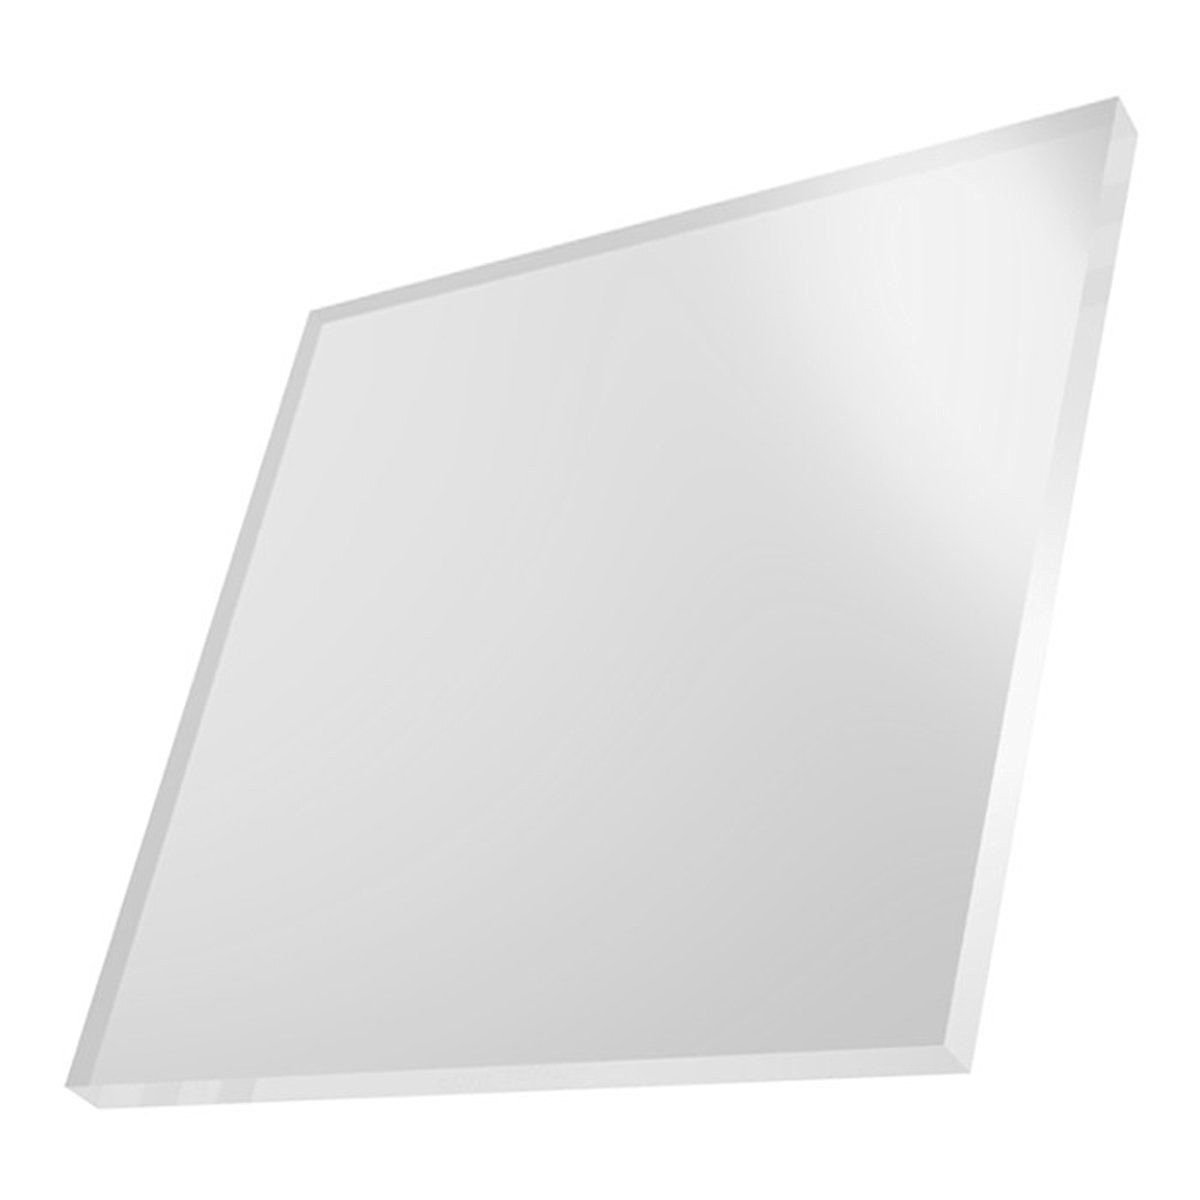 Plexiglass Acrylic Sheet Used in Kitchen Cabinets Trophies Craft 24x24 3mm White